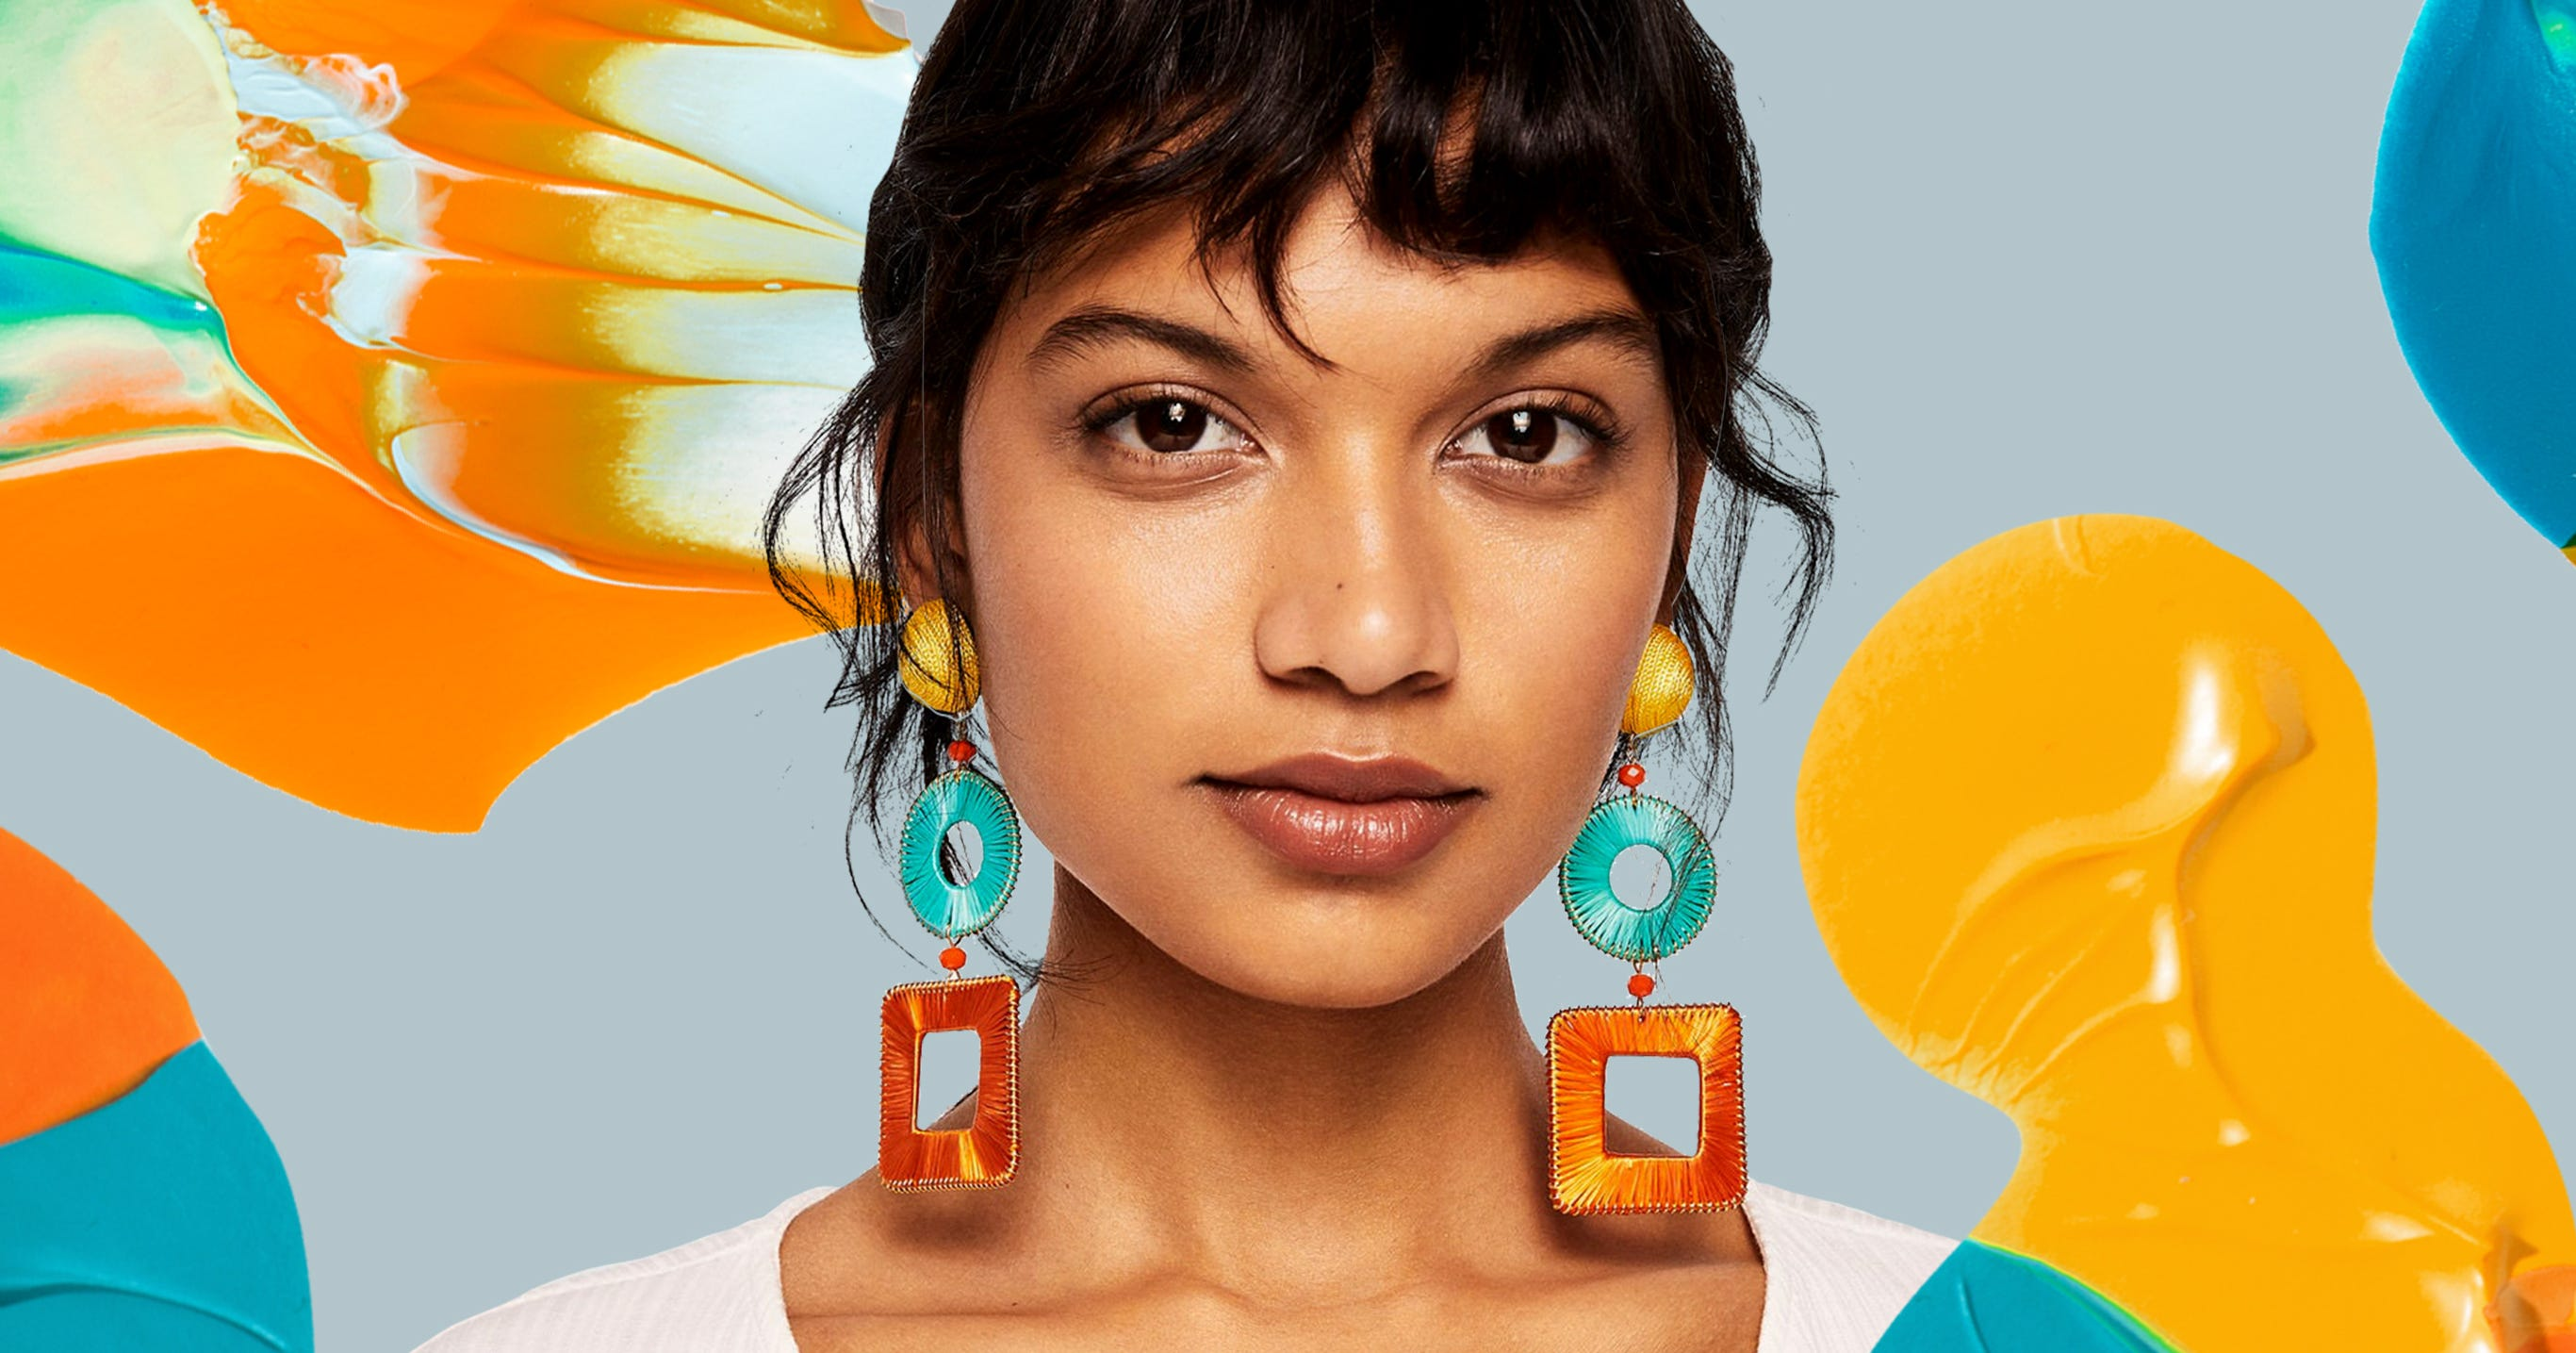 Art Attack: The New Statement Earrings